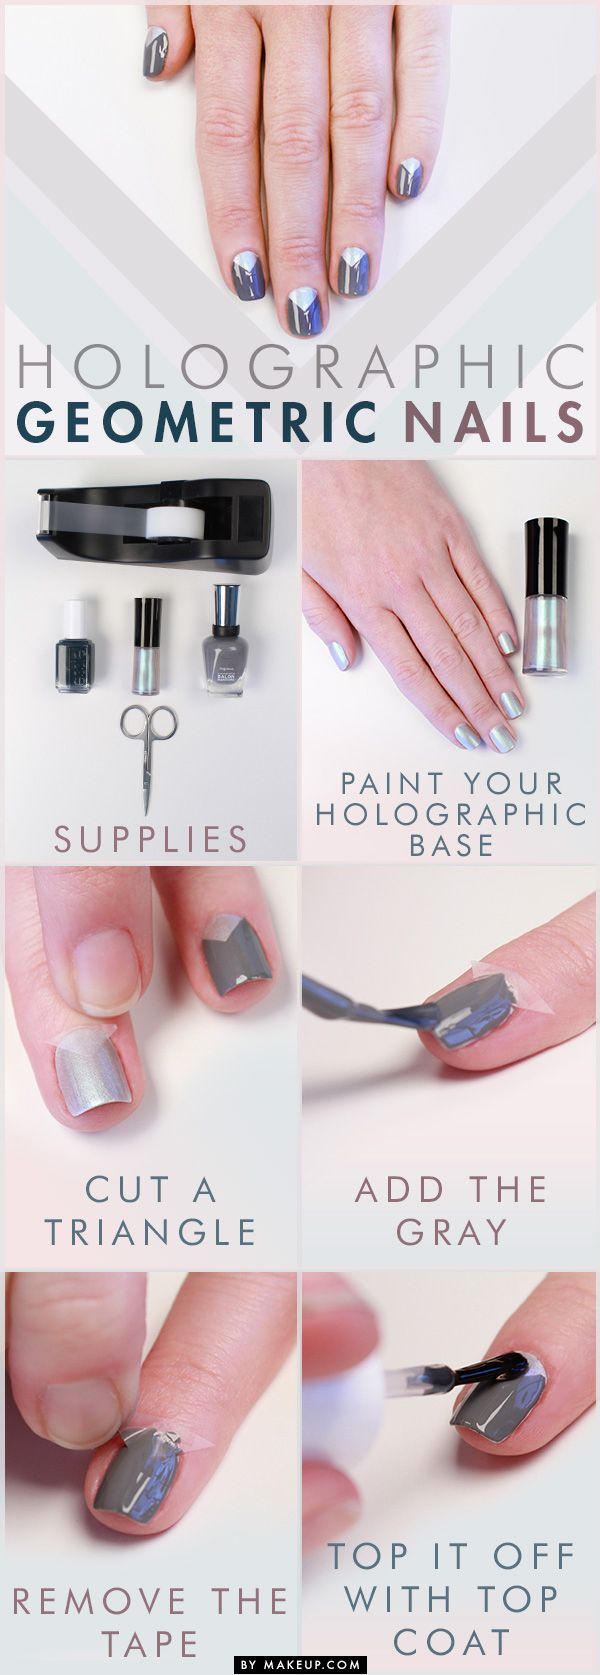 Time to try out a new manicure - one that involves geometry! As far as manicure math goes, we know this: geometric shapes + new, fall nail colors = need-to-have nails. For this nail art tutorial you'll need: gray nail polish, Armani nail lacquer in Kaleidoscope scissors, tape, and top coat.